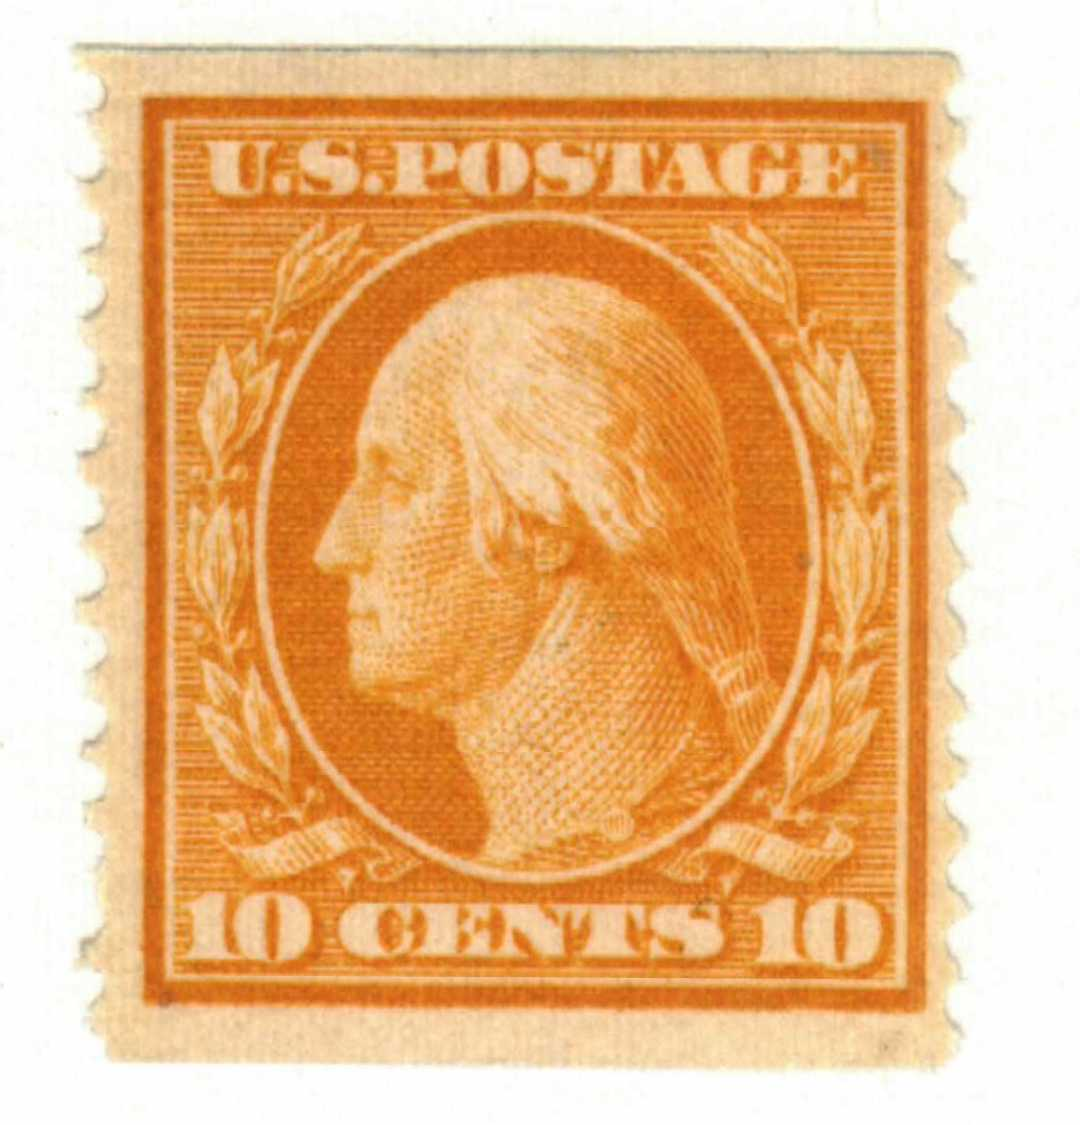 1909 10c Washington, yellow